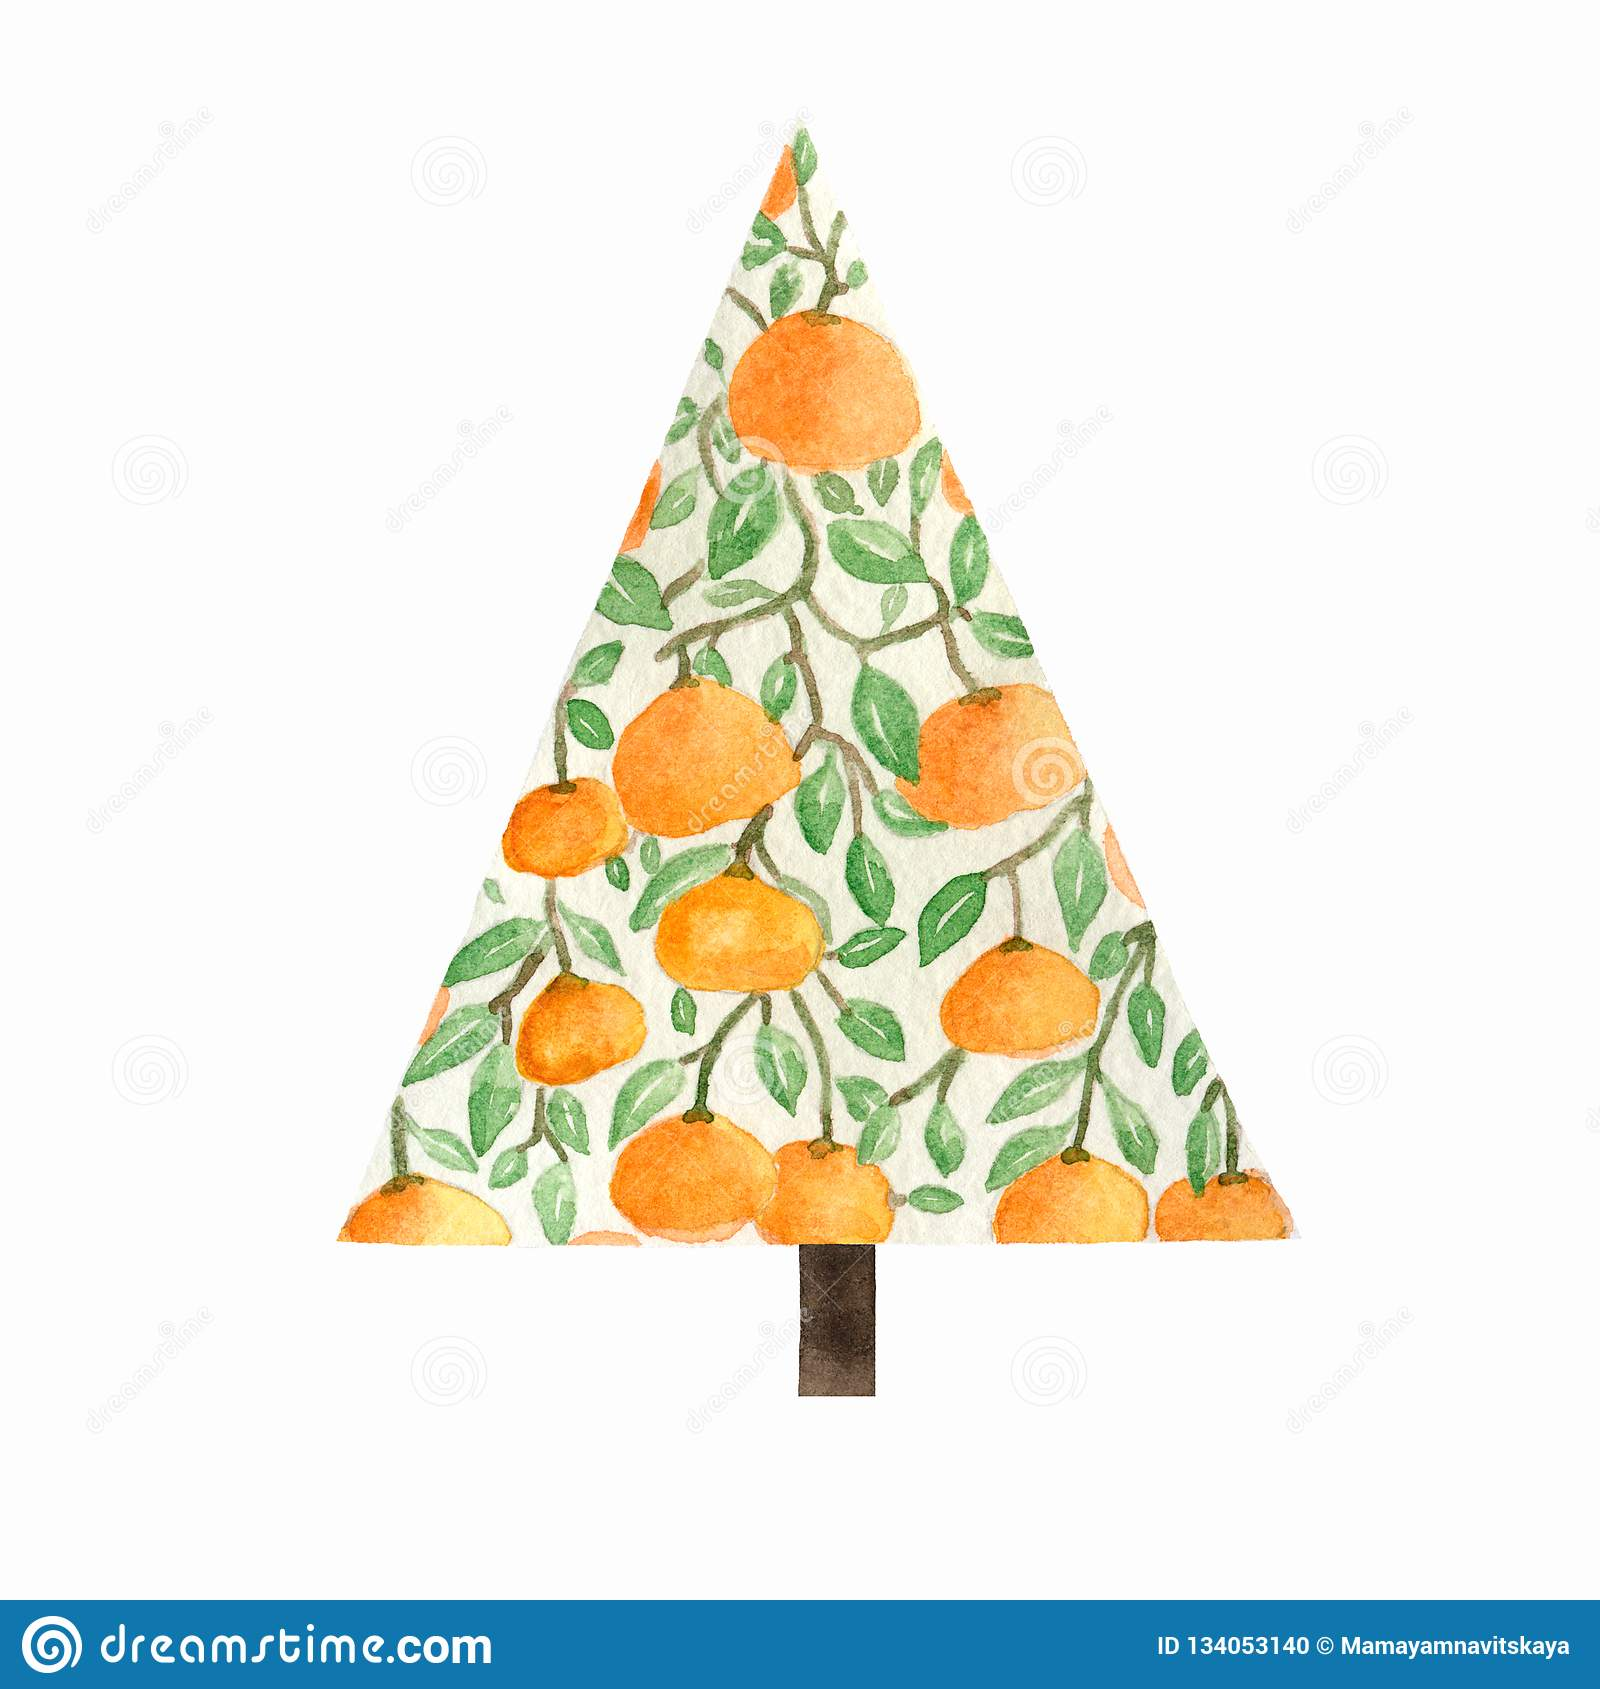 Christmas orange tree with oranges. Sketch for greeting card, festive poster, party invitations,textile, fabric, wrapping, menu.